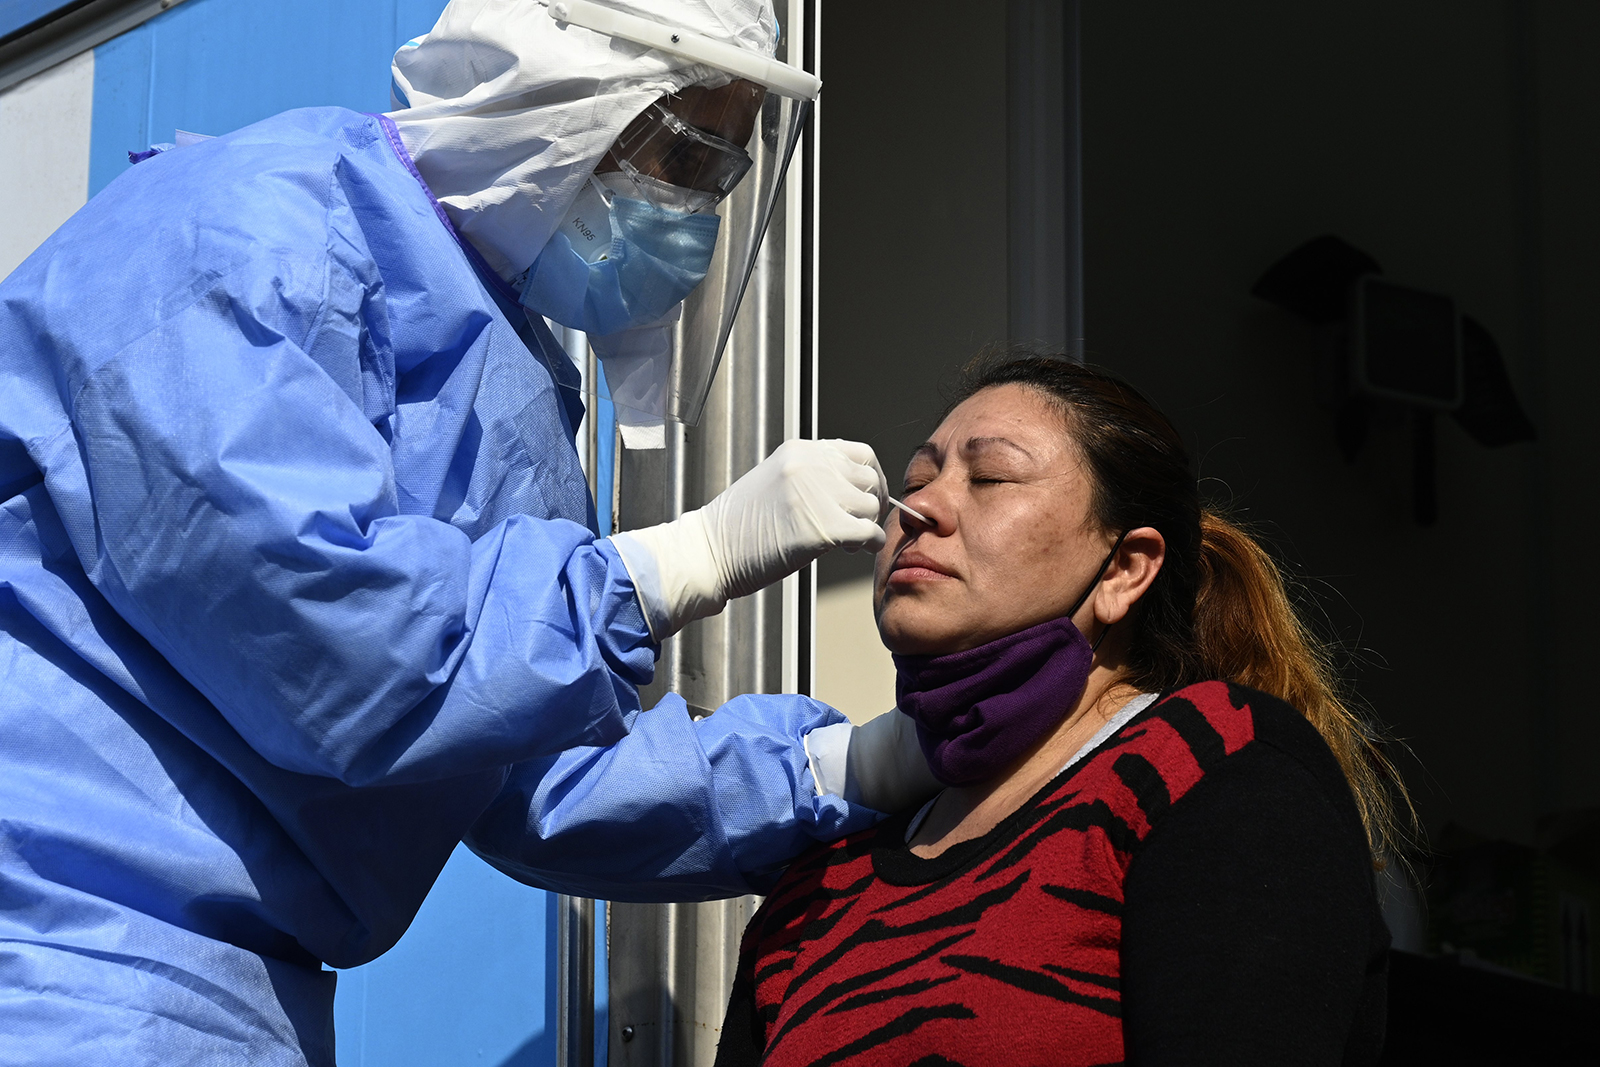 A doctor takes samples for a PCR test to a woman with Covid-19 symptoms at the mobile health unit in Villa Fiorito, Buenos Aires outskirts, Argentina, on August 3.